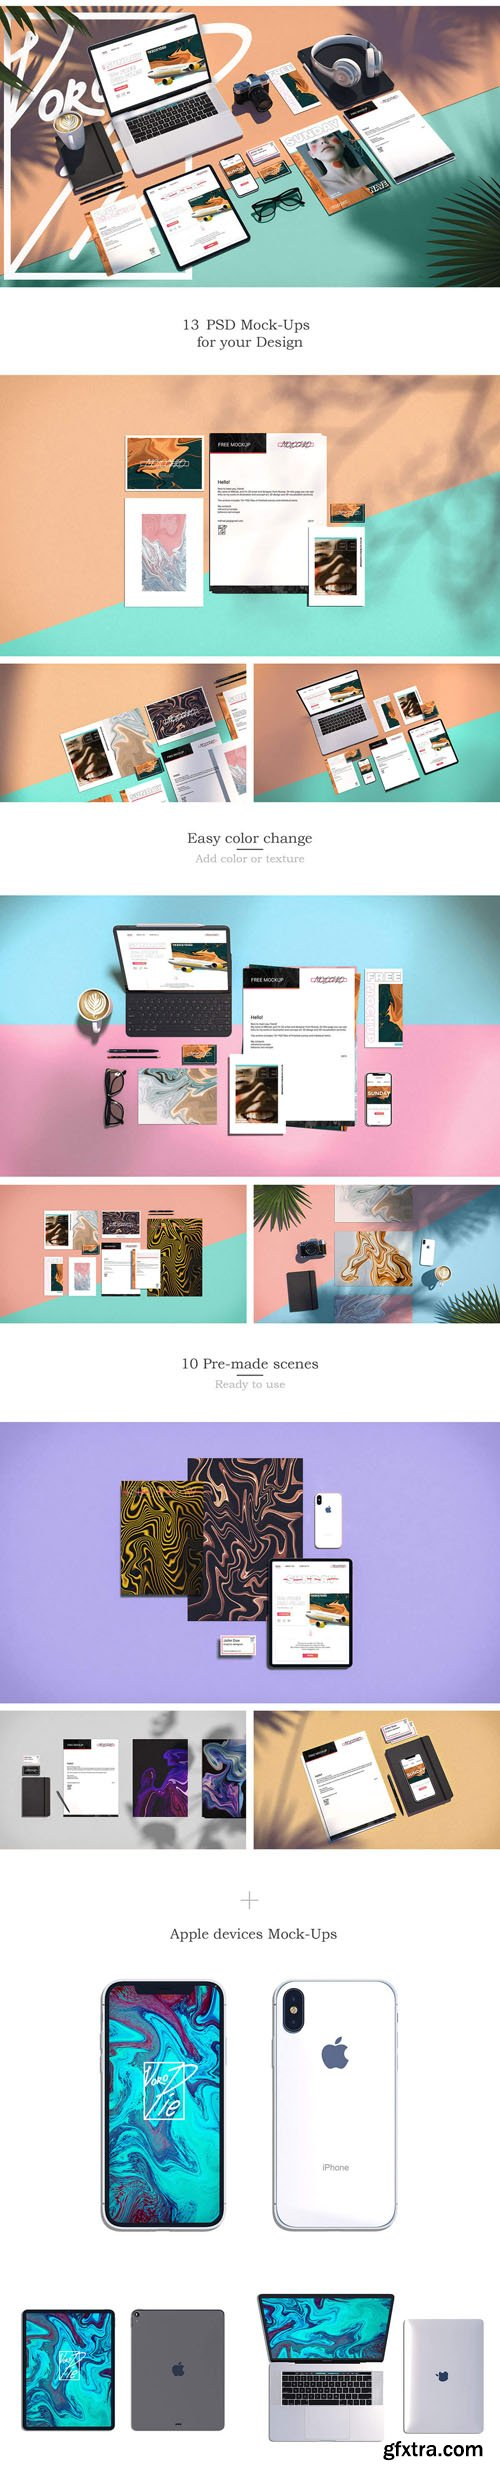 13 Pre-made Scenes PSD Mockups Collection